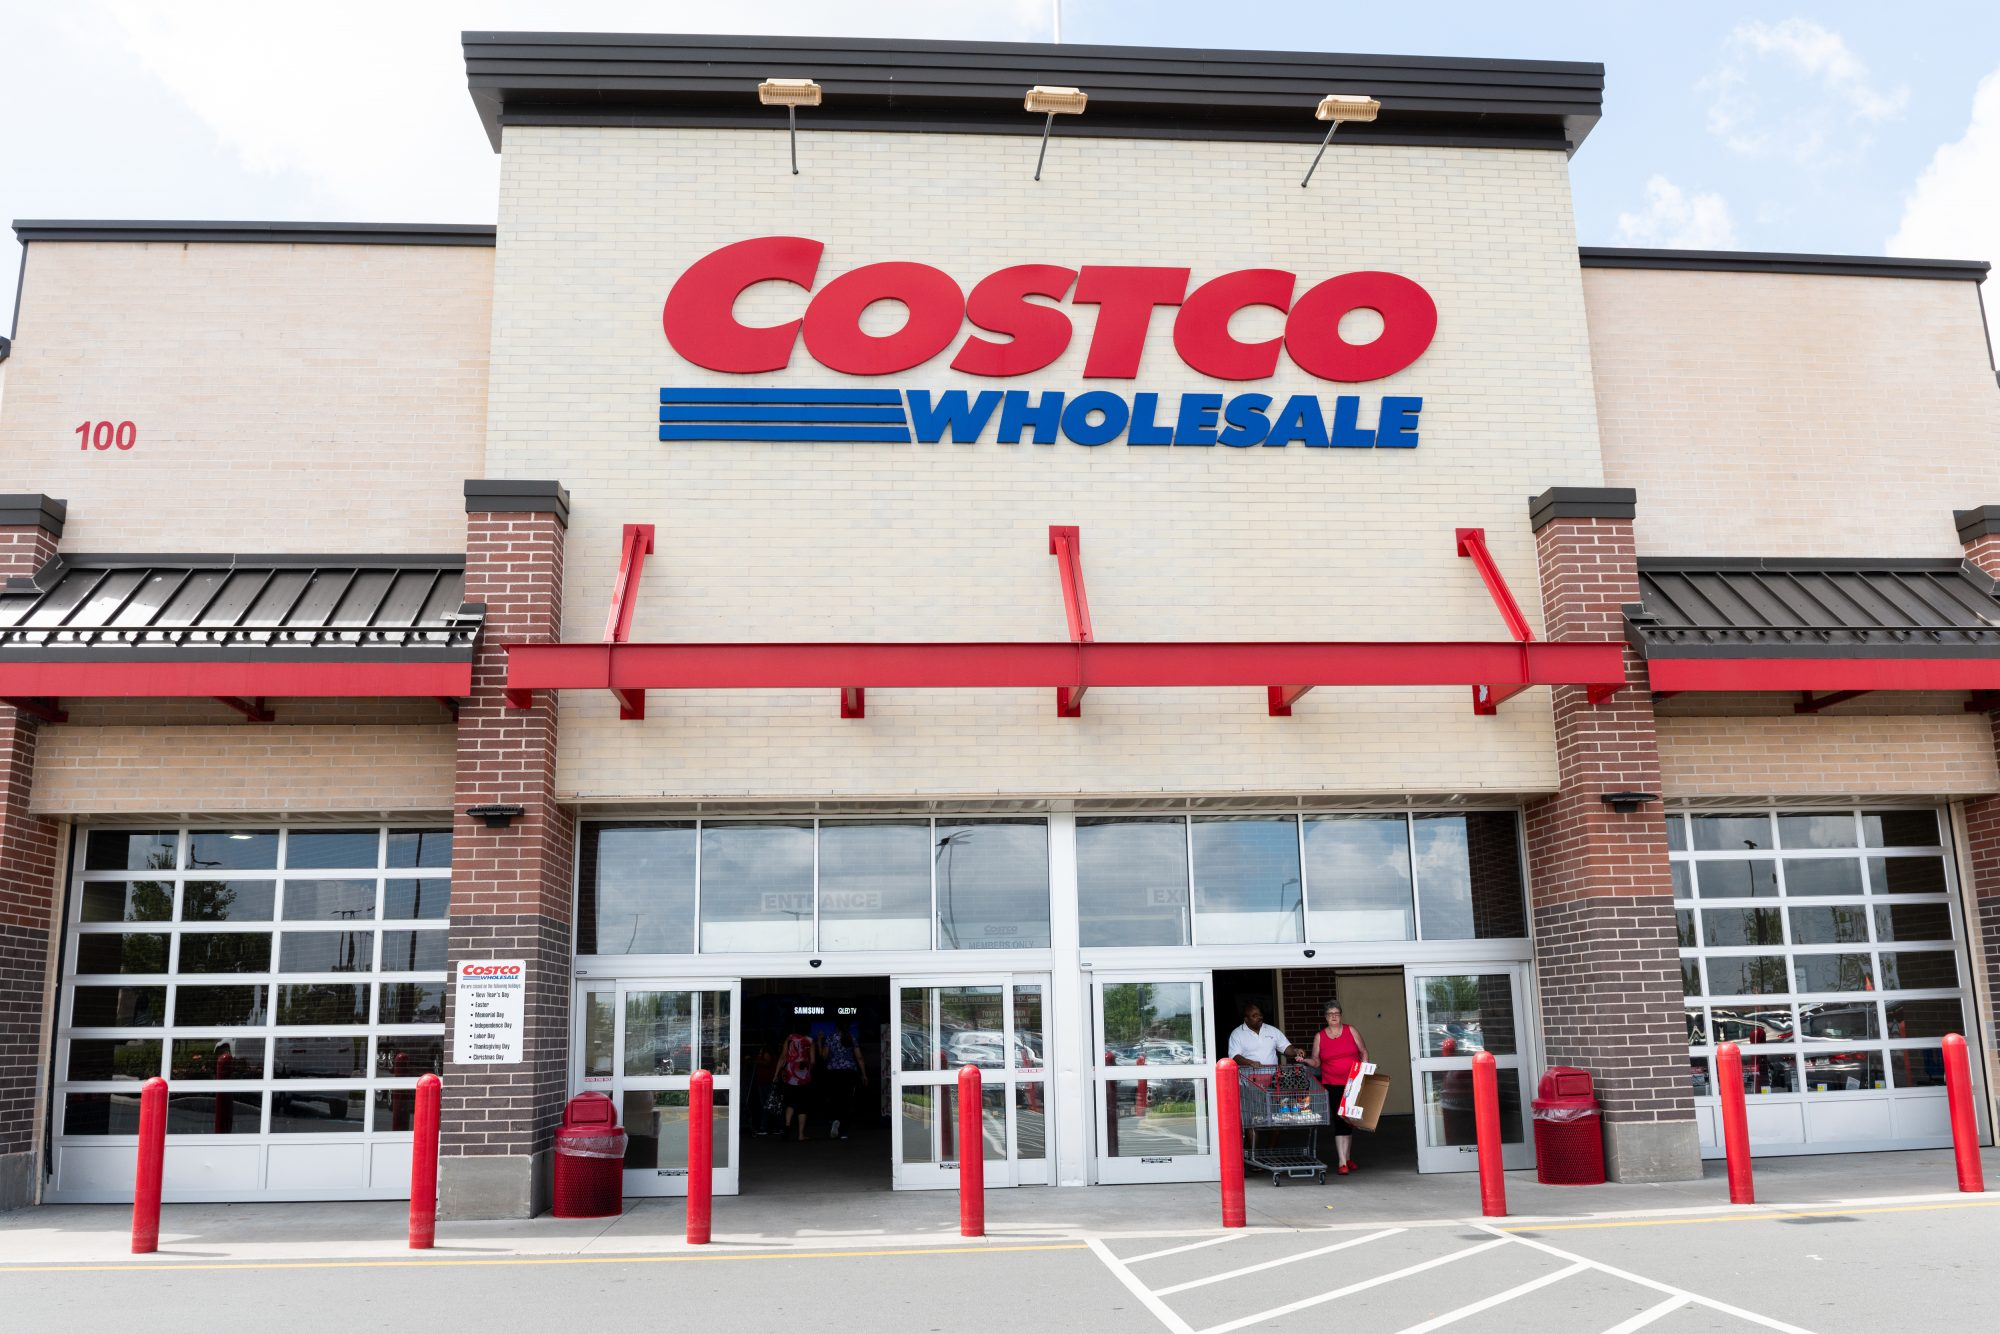 The Ultimate Test for Costco Lovers